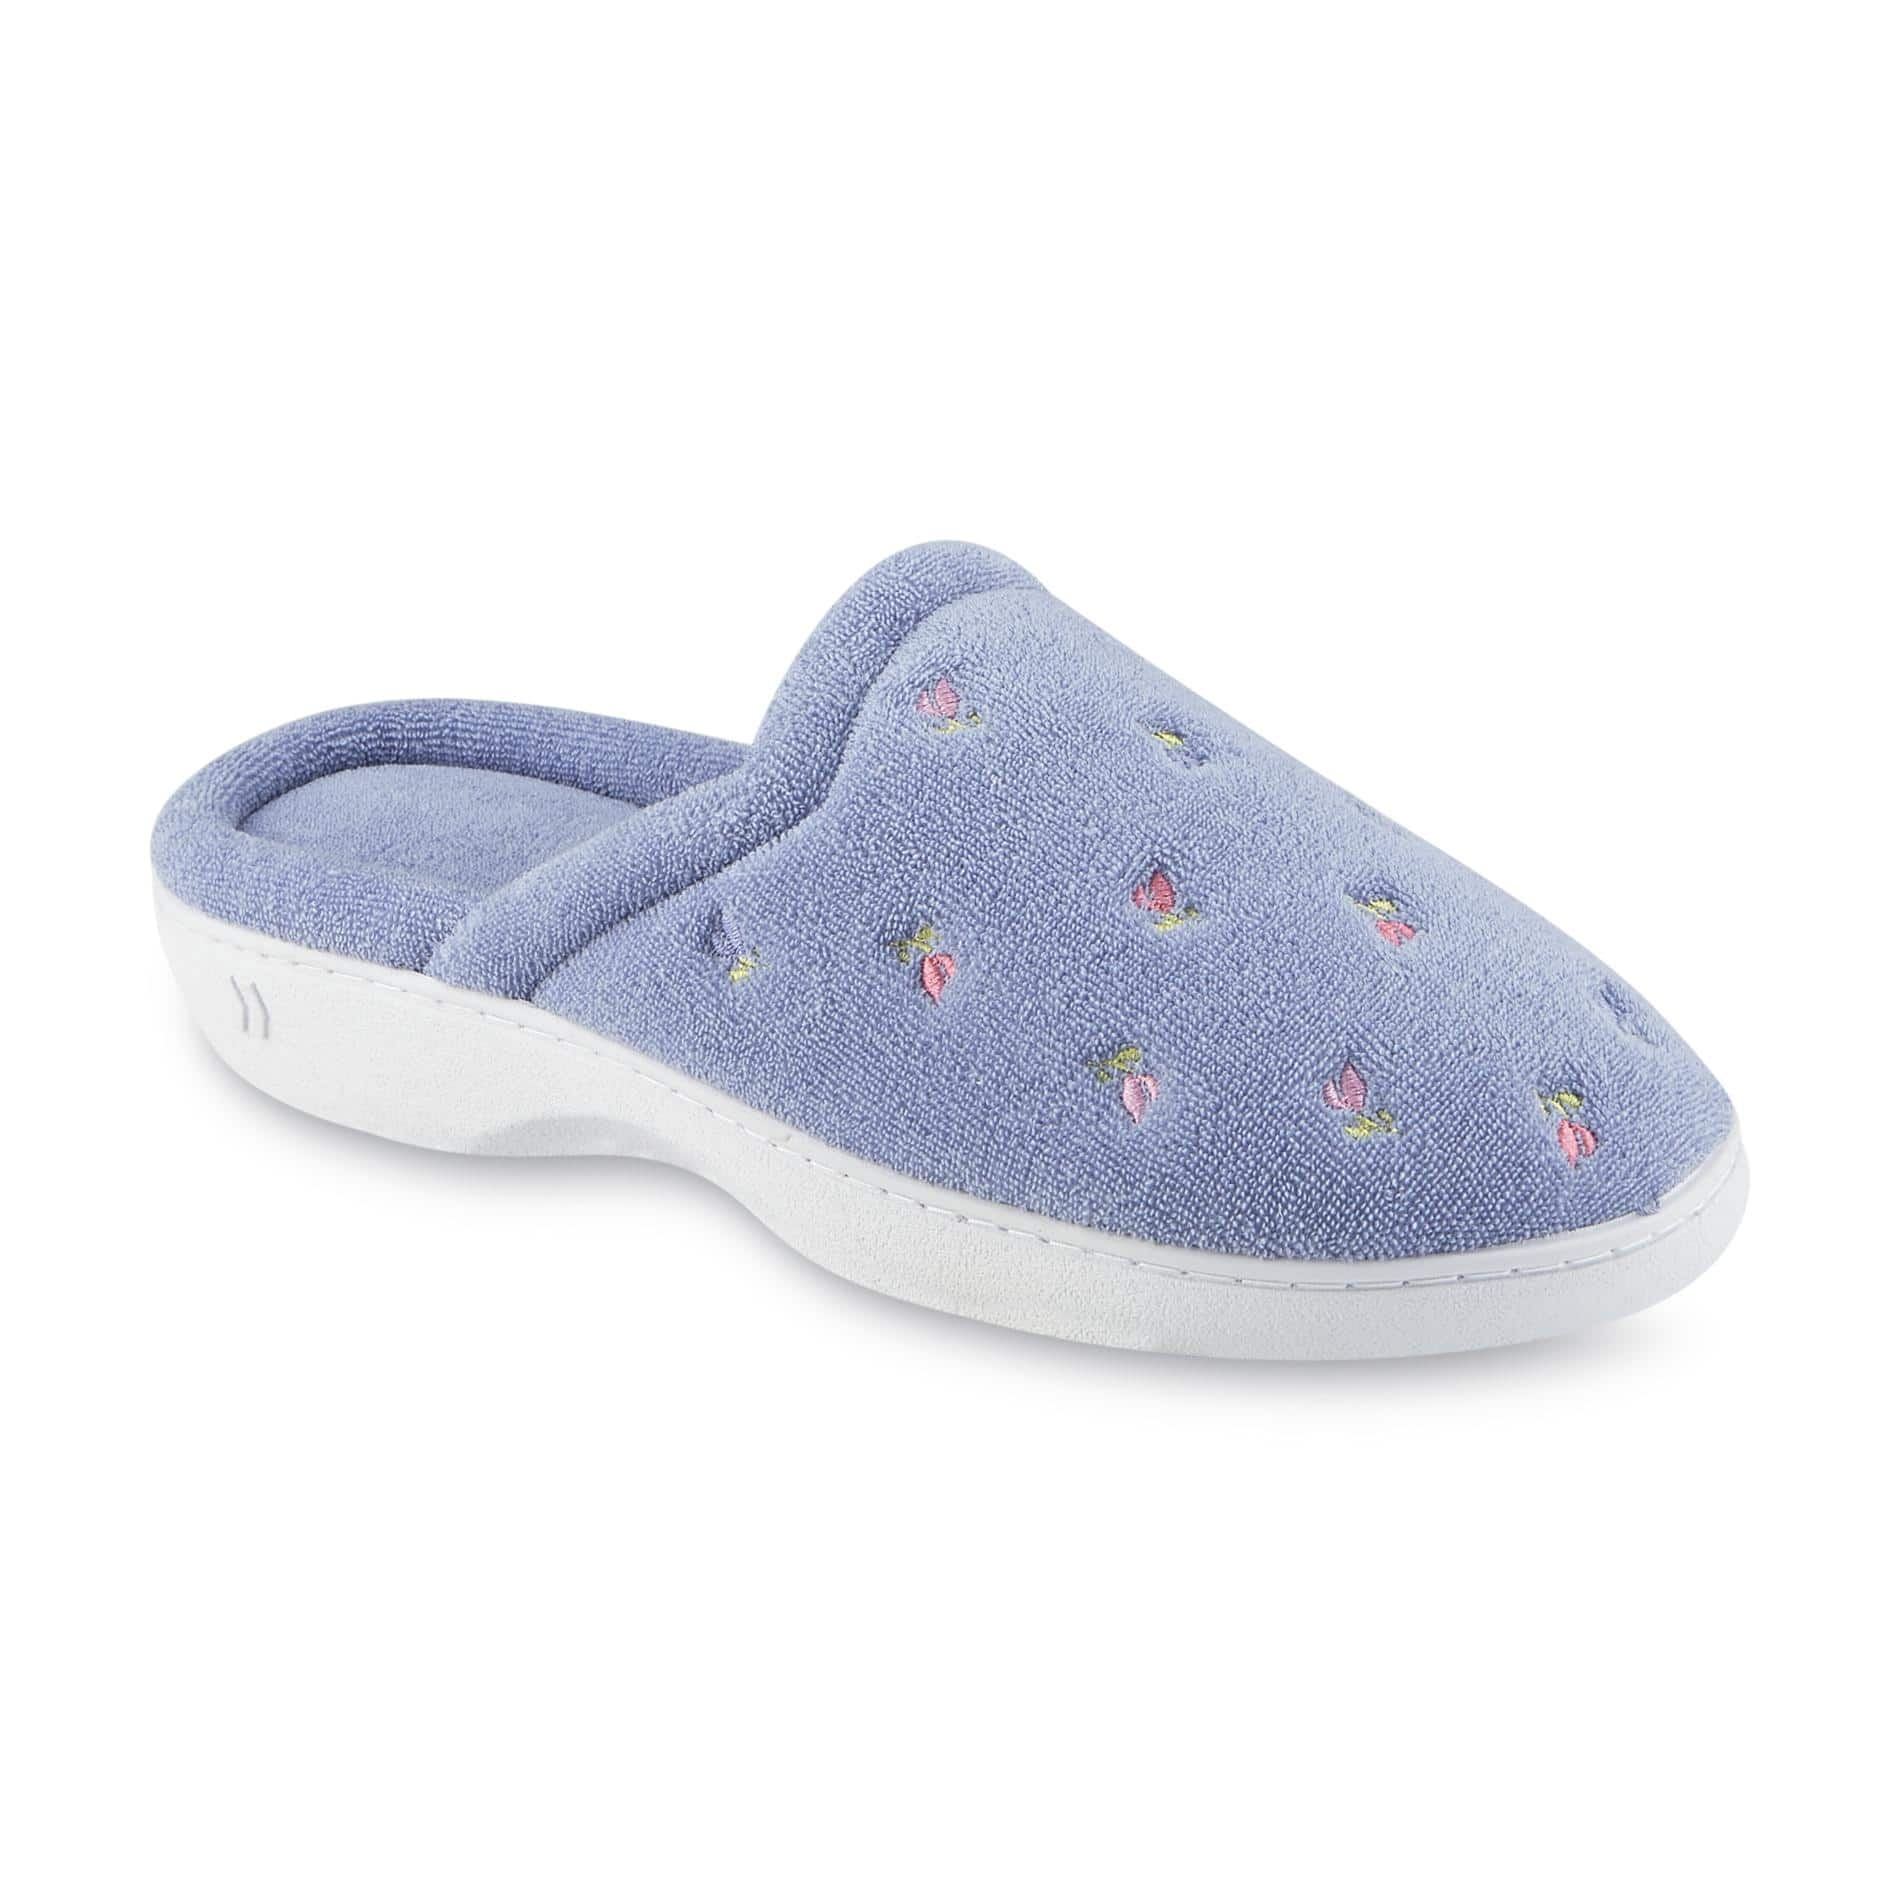 Women's ISOTONER Slippers: Clog Slippers - Floral, Chukka Wide Width, PillowStep, Ryann & More $7.99 at Sears + Free Store Pickup **Not sold in CA